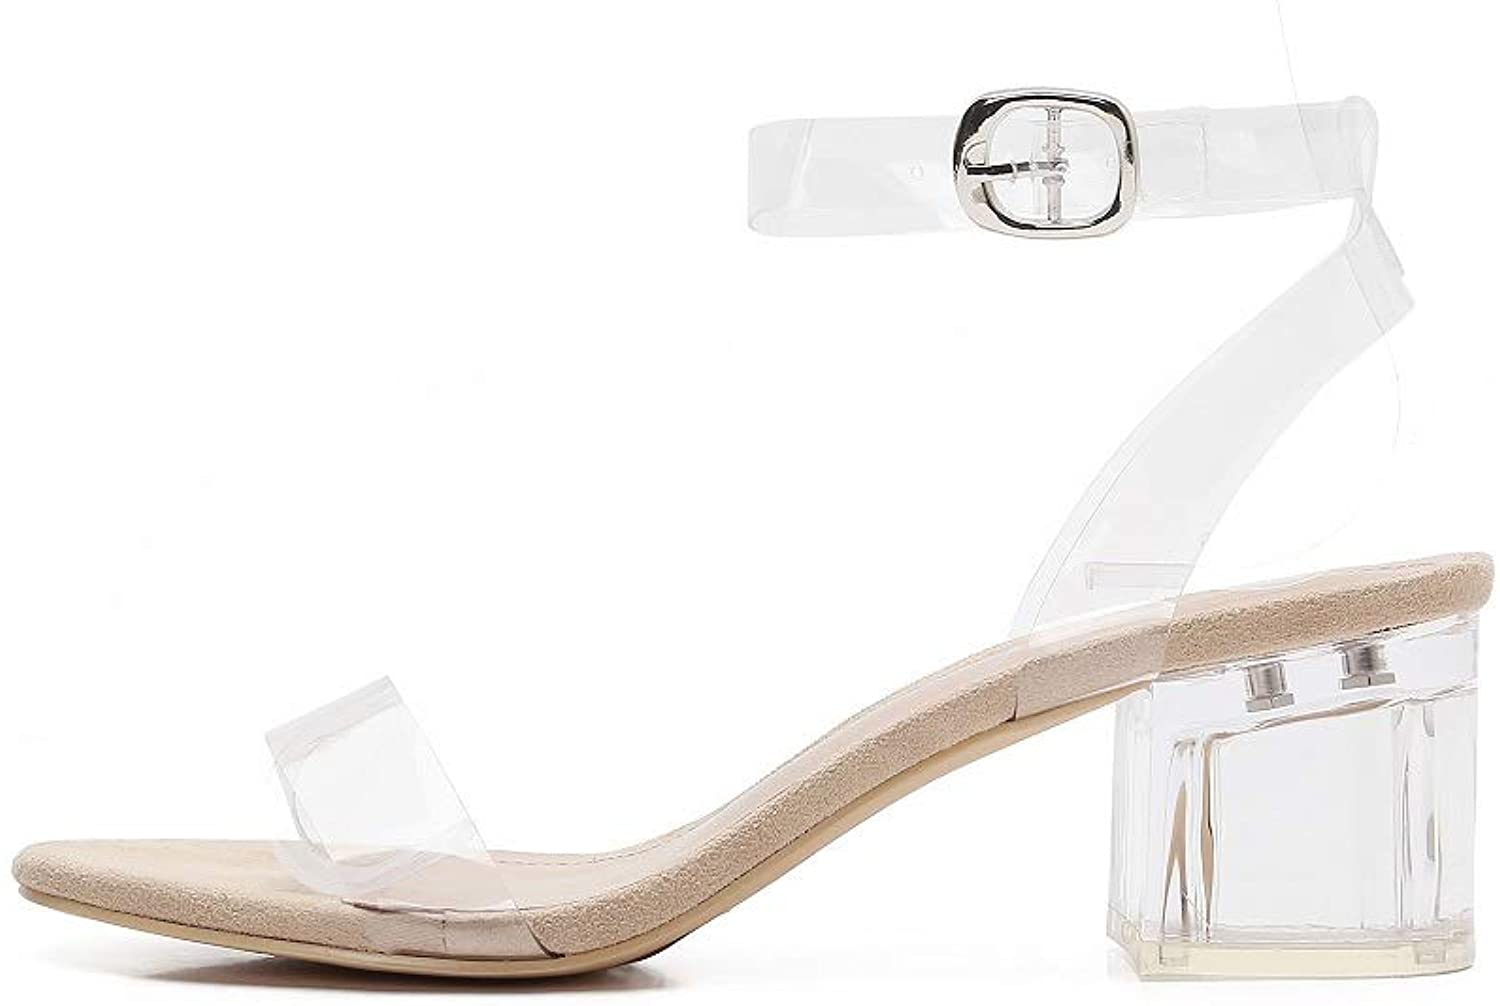 Best nude shoes for wedding